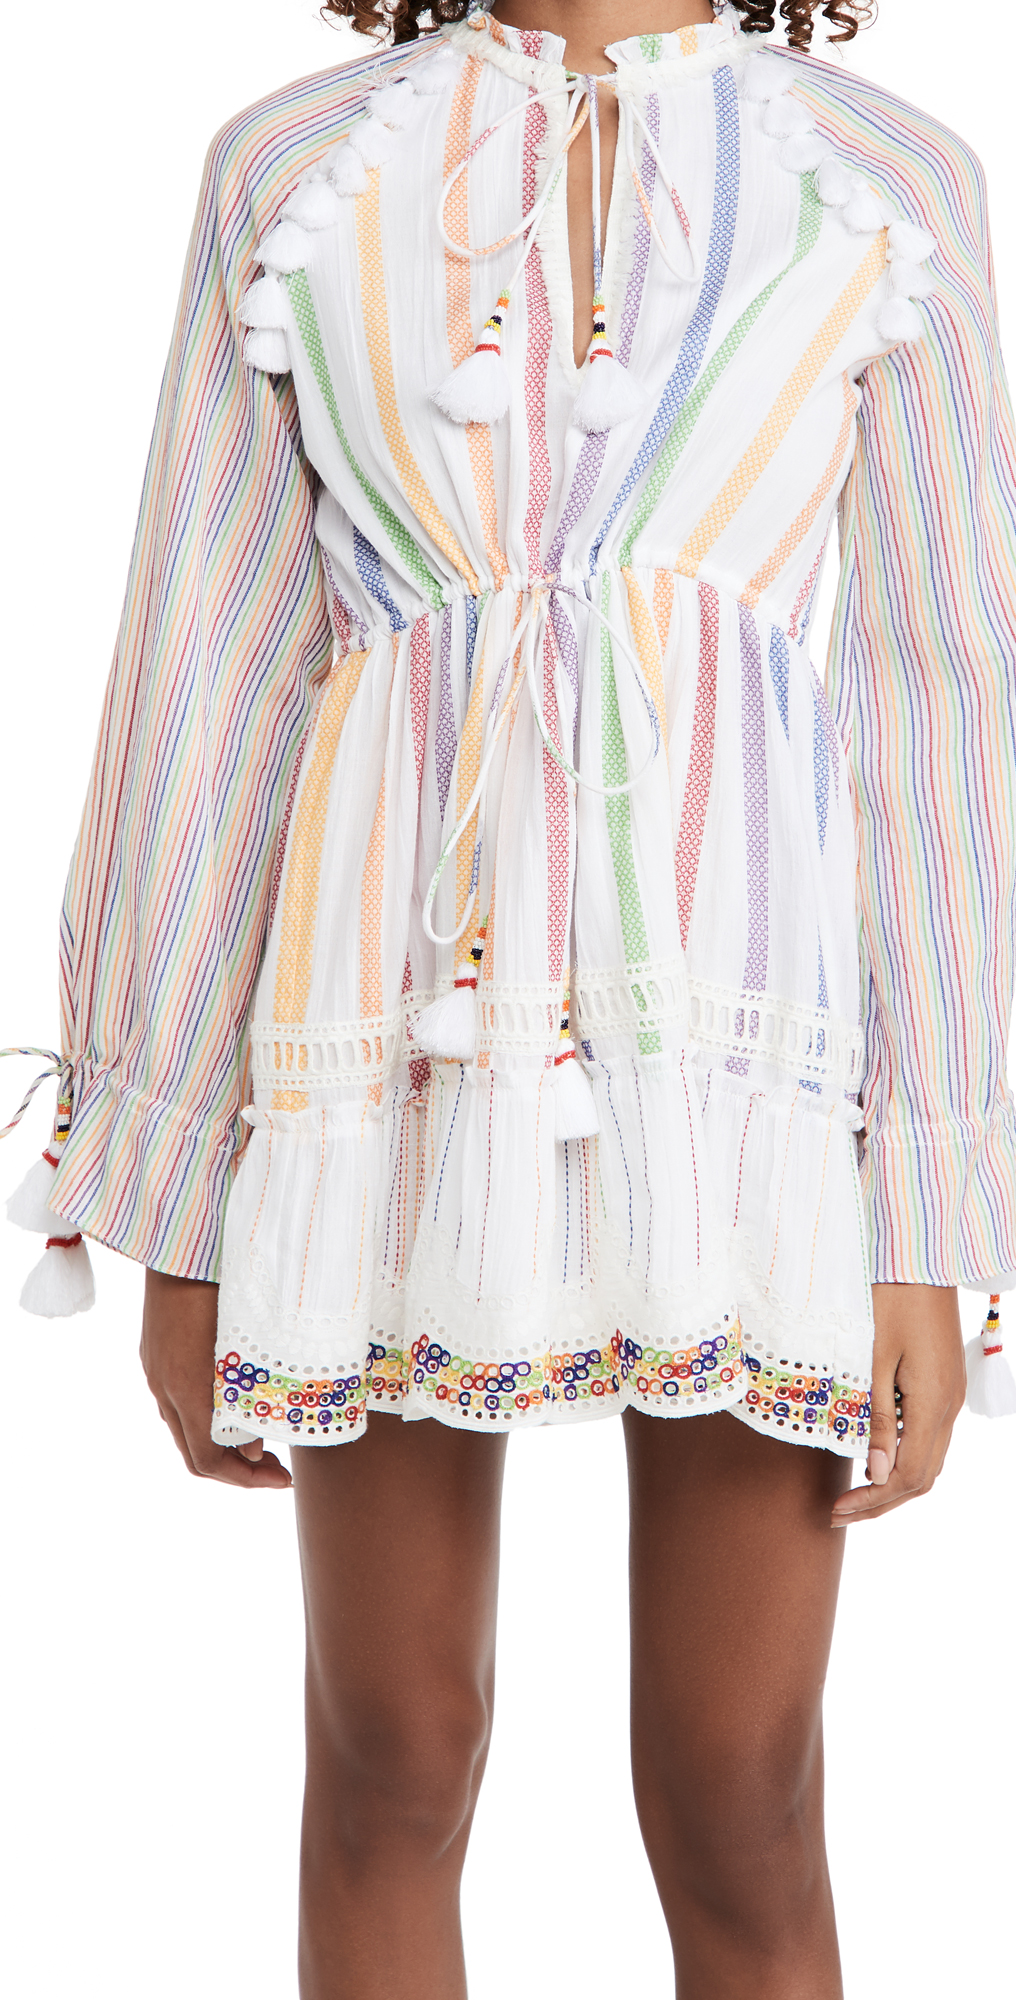 Hemant and Nandita Short Rainbow Dress